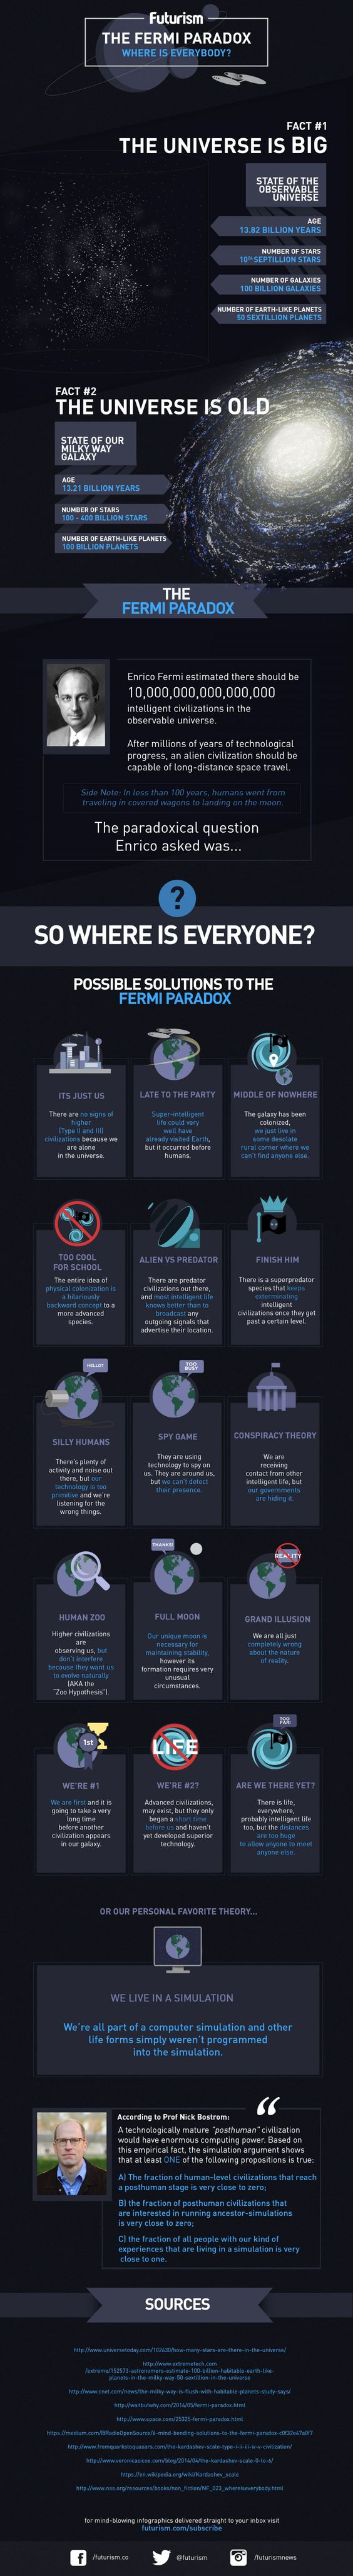 The age of the universe and its vast number of stars suggests that extraterrestrial life should be common. If that's the case, then where is everyone? In this infographic we explore some possibilities.